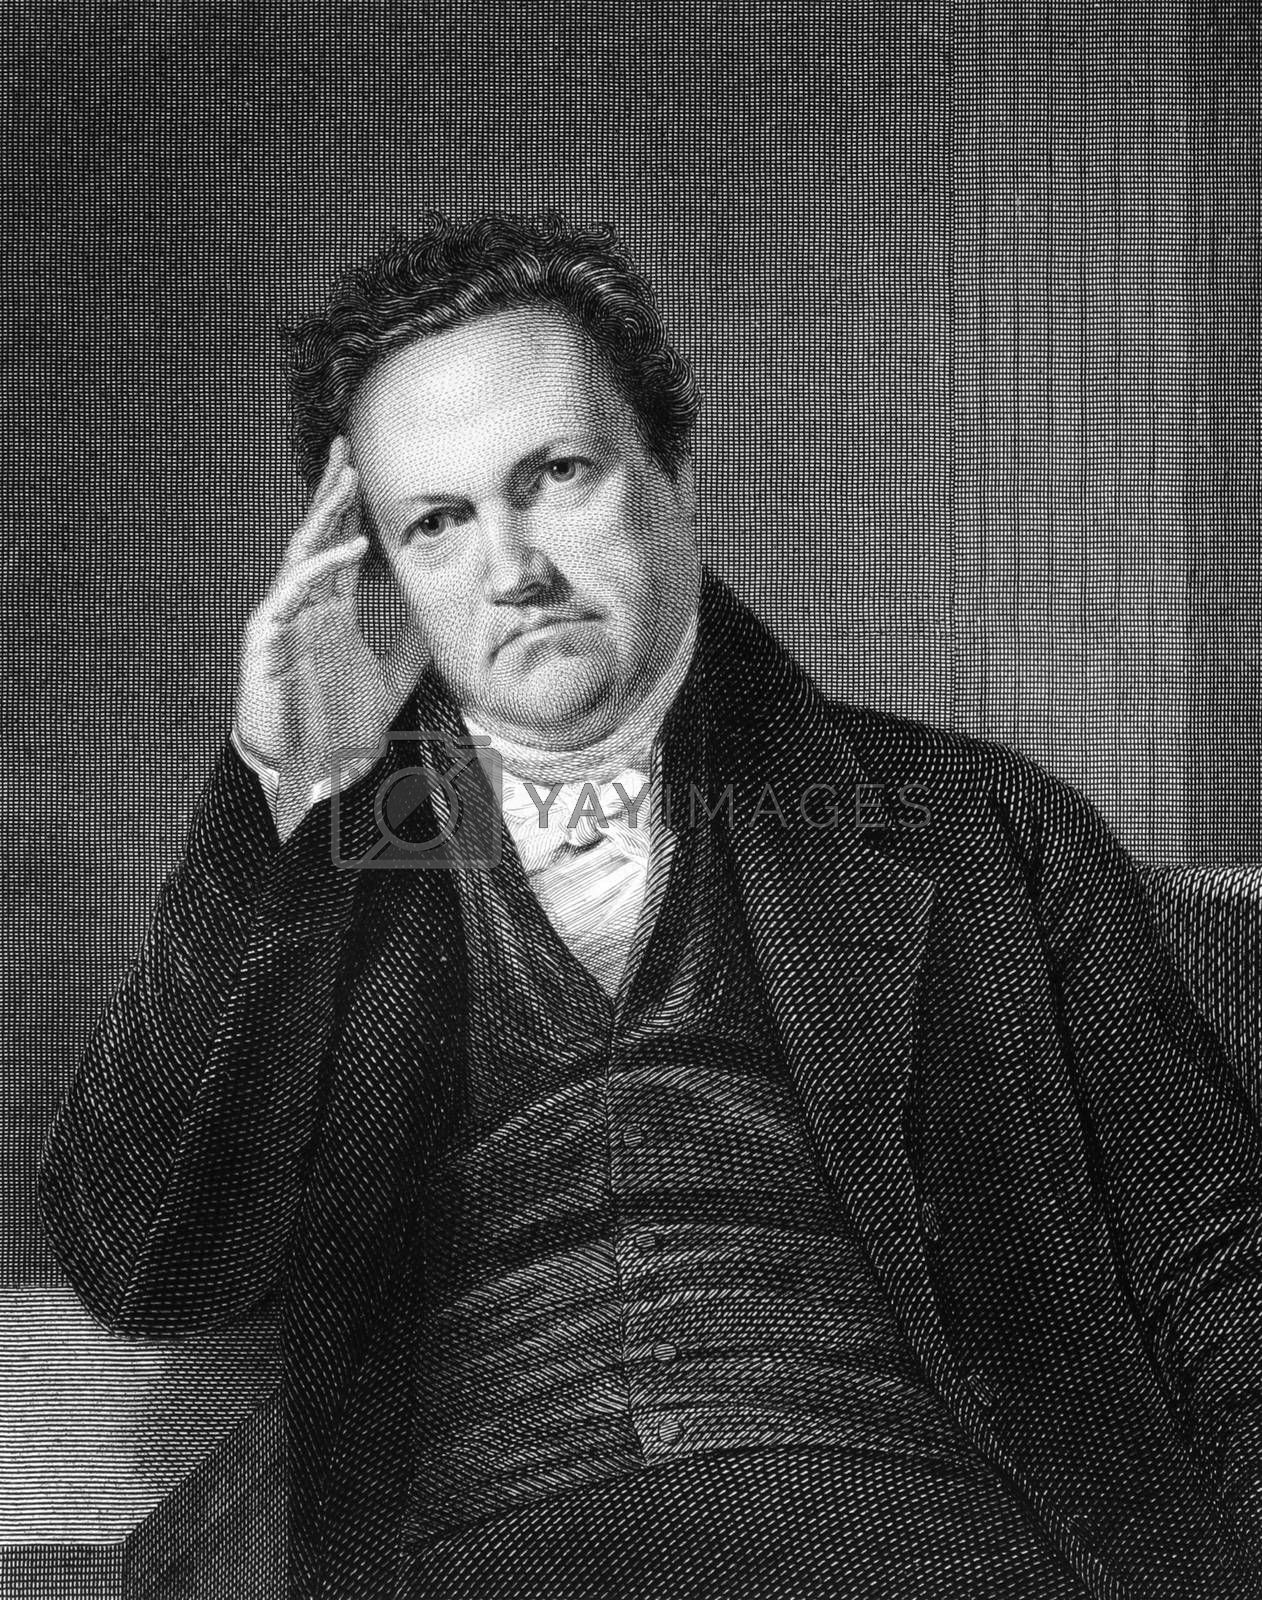 DeWitt Clinton (1769-1828) on engraving from 1835. American politician and naturalist who served as a United States Senator and 6th Governor of New York. Engraved by A.B.Durrand and published in''National Portrait Gallery of Distinguished Americans Volume II'',USA,1835.